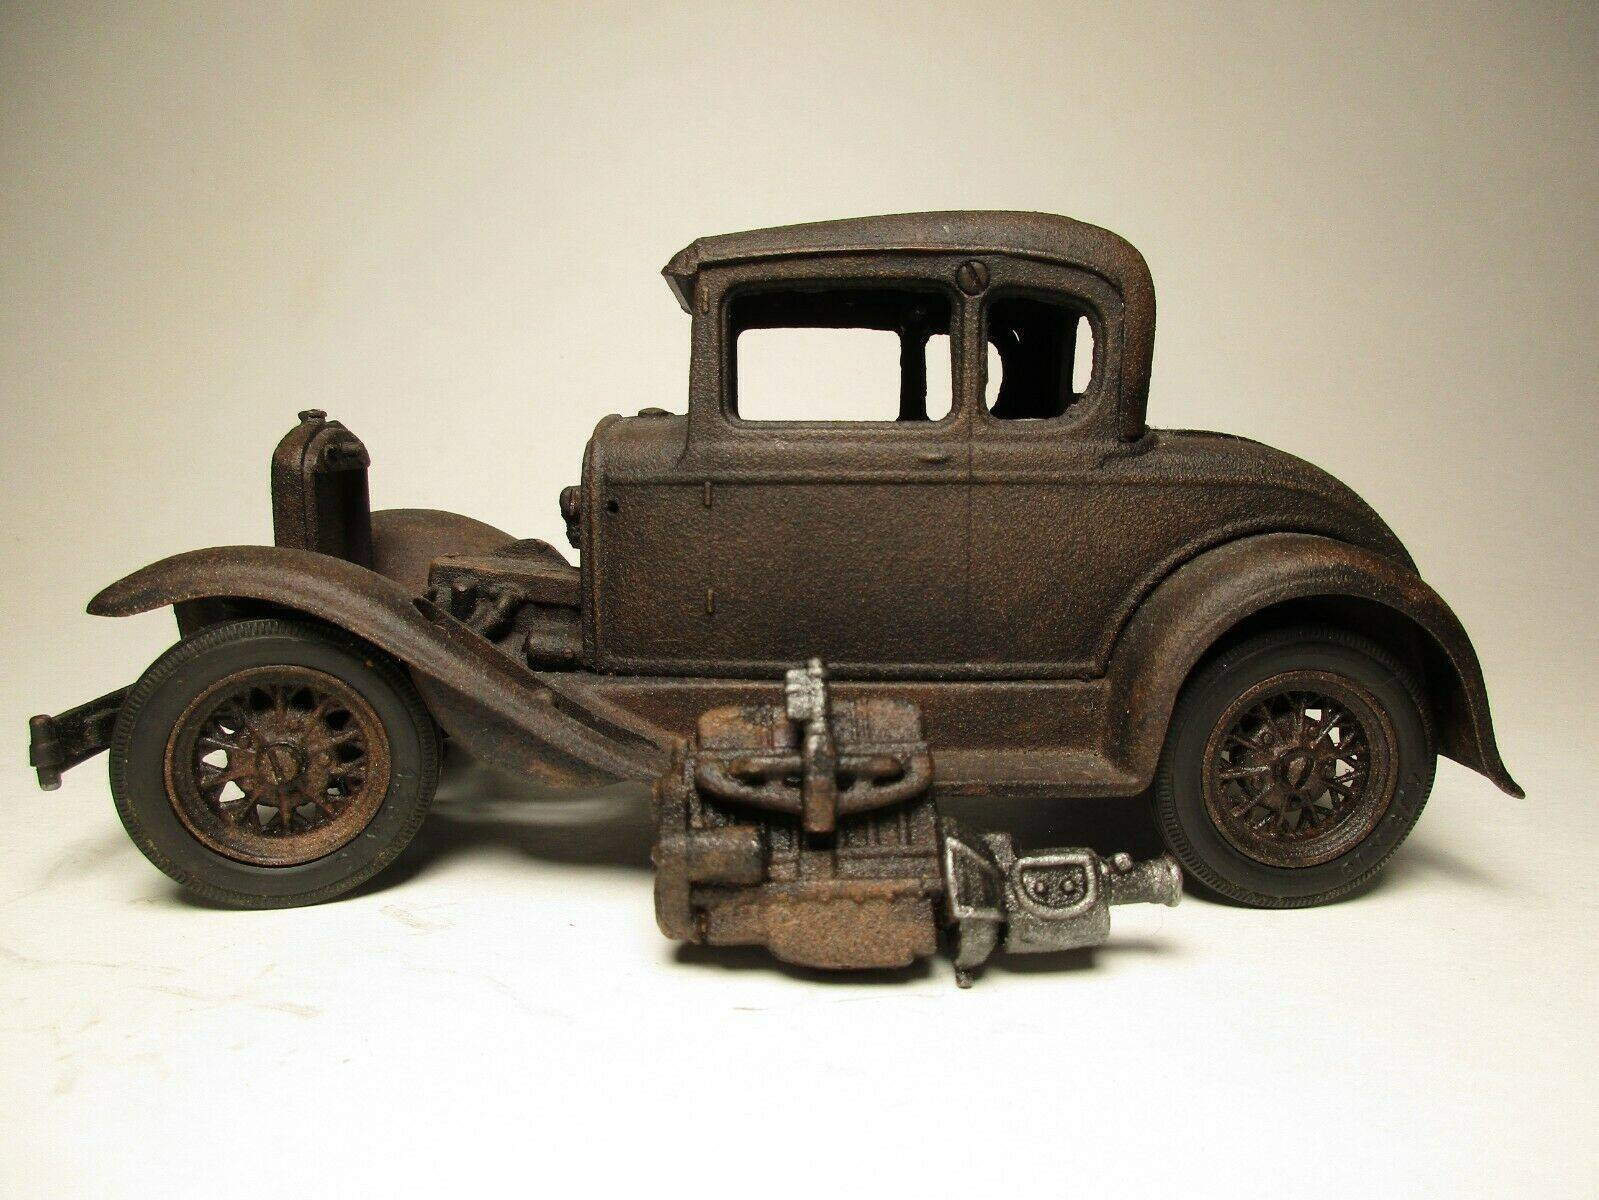 Vintage-Hubley-1932-Ford-Model-A-Coupe-and-Engine---Rusty-Weathered-Barn-Find-9